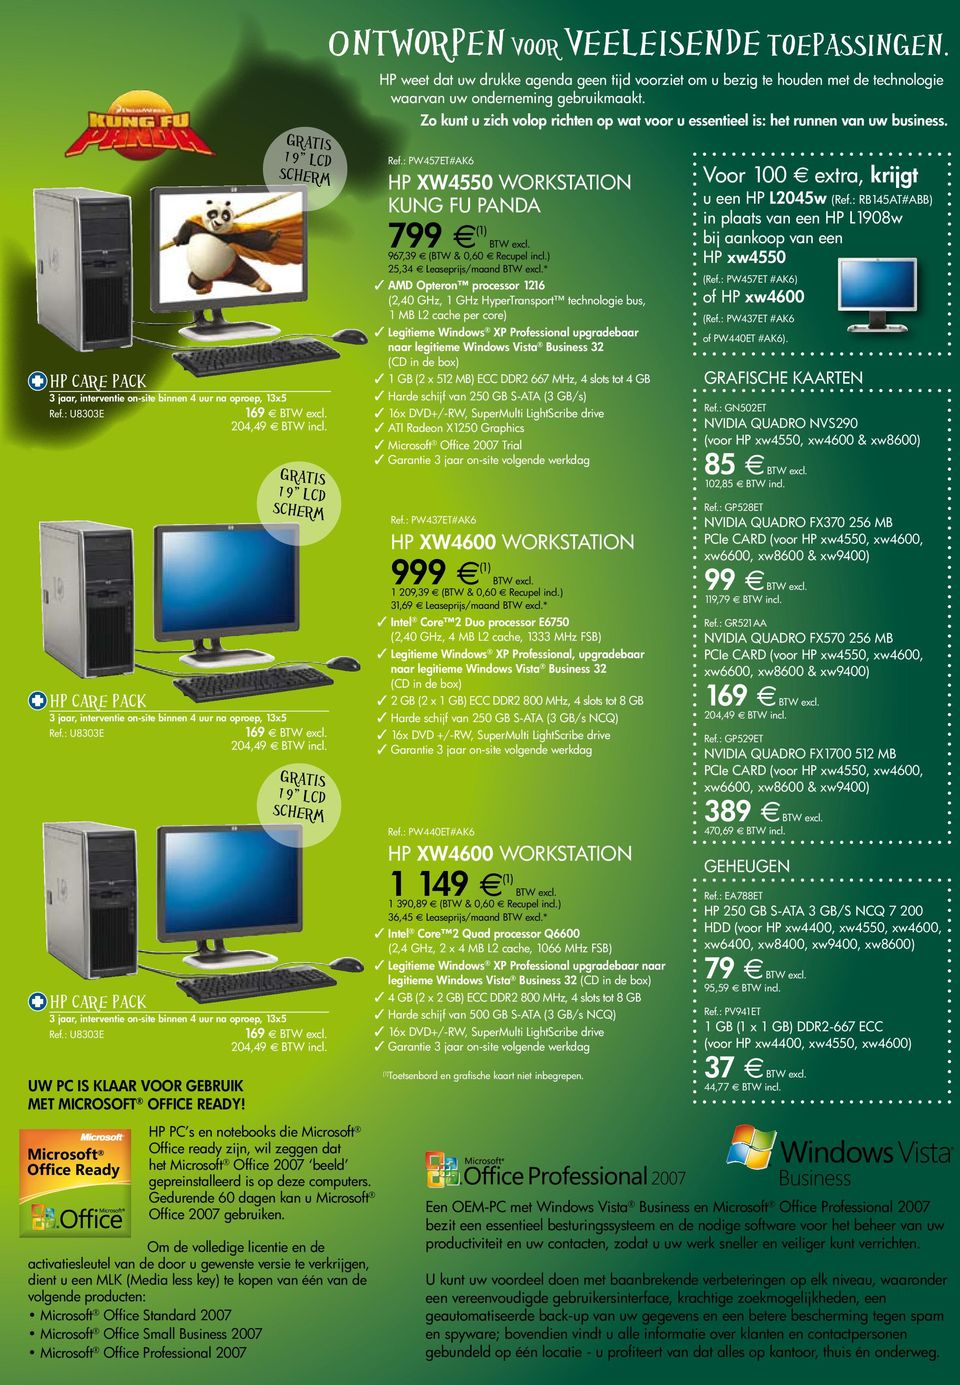 Zo kunt u zich volop richten op wat voor u essentieel is: het runnen van uw business. Ref.: PW457ET#AK6 HP xw4550 workstation KUNG FU PANDA 799 e BTW excl. 967,39 e (BTW & 0,60 e Recupel incl.